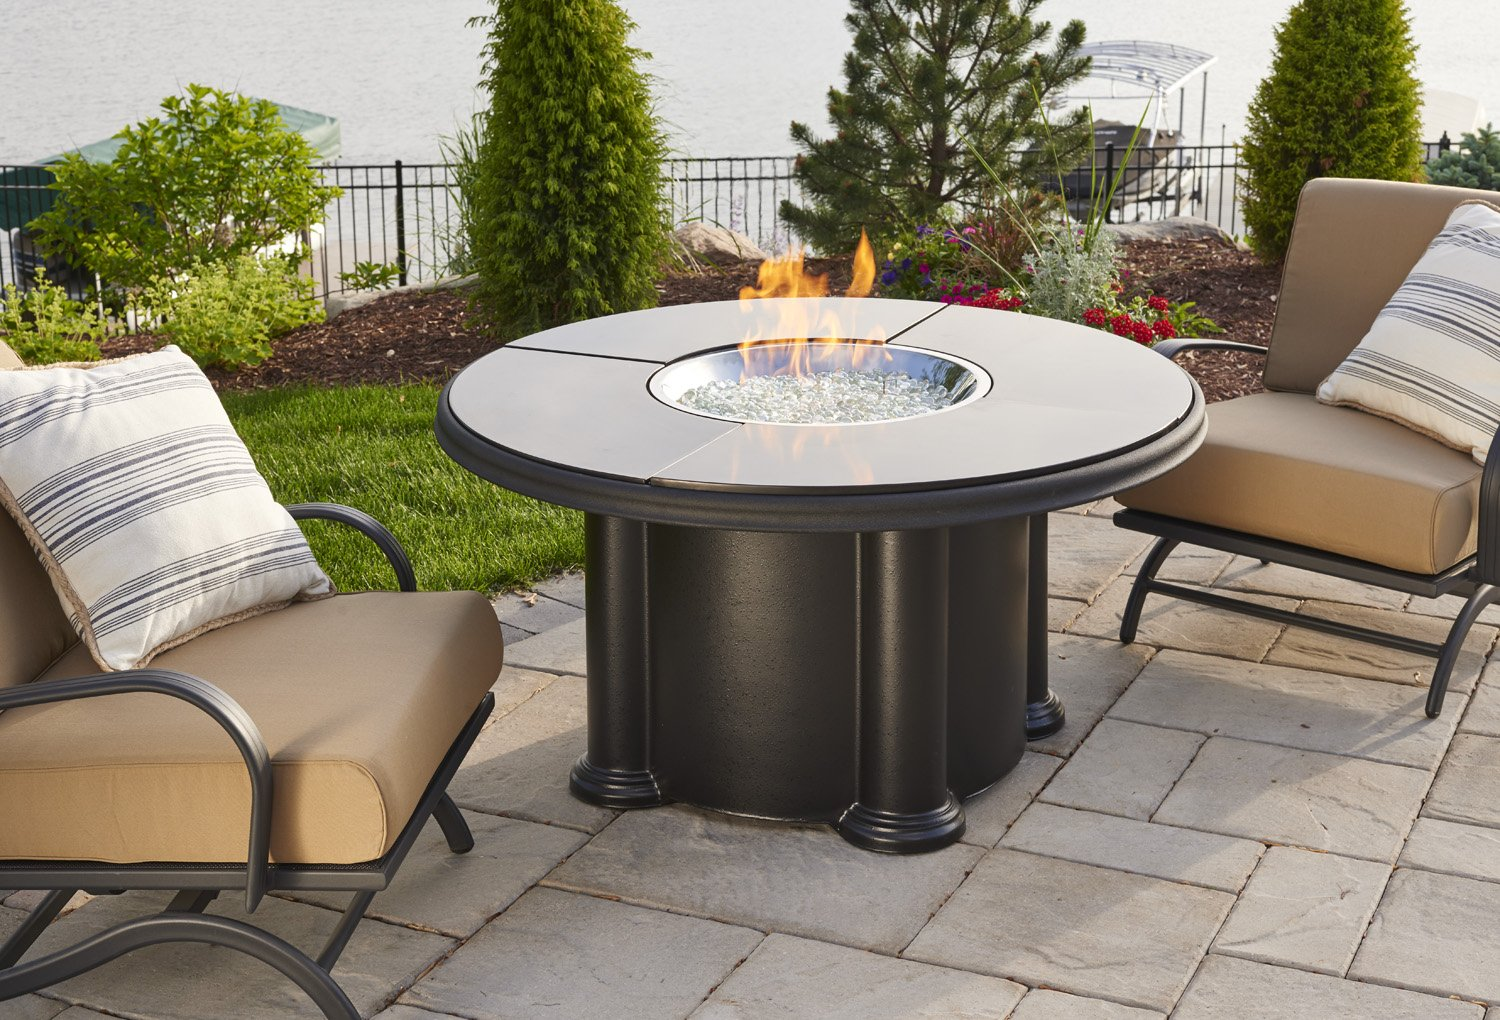 Grand Colonial, granite, dining table, promotion, sale, fire pit, firepit, fire table,  firetable, Outdoor Greatroom Company